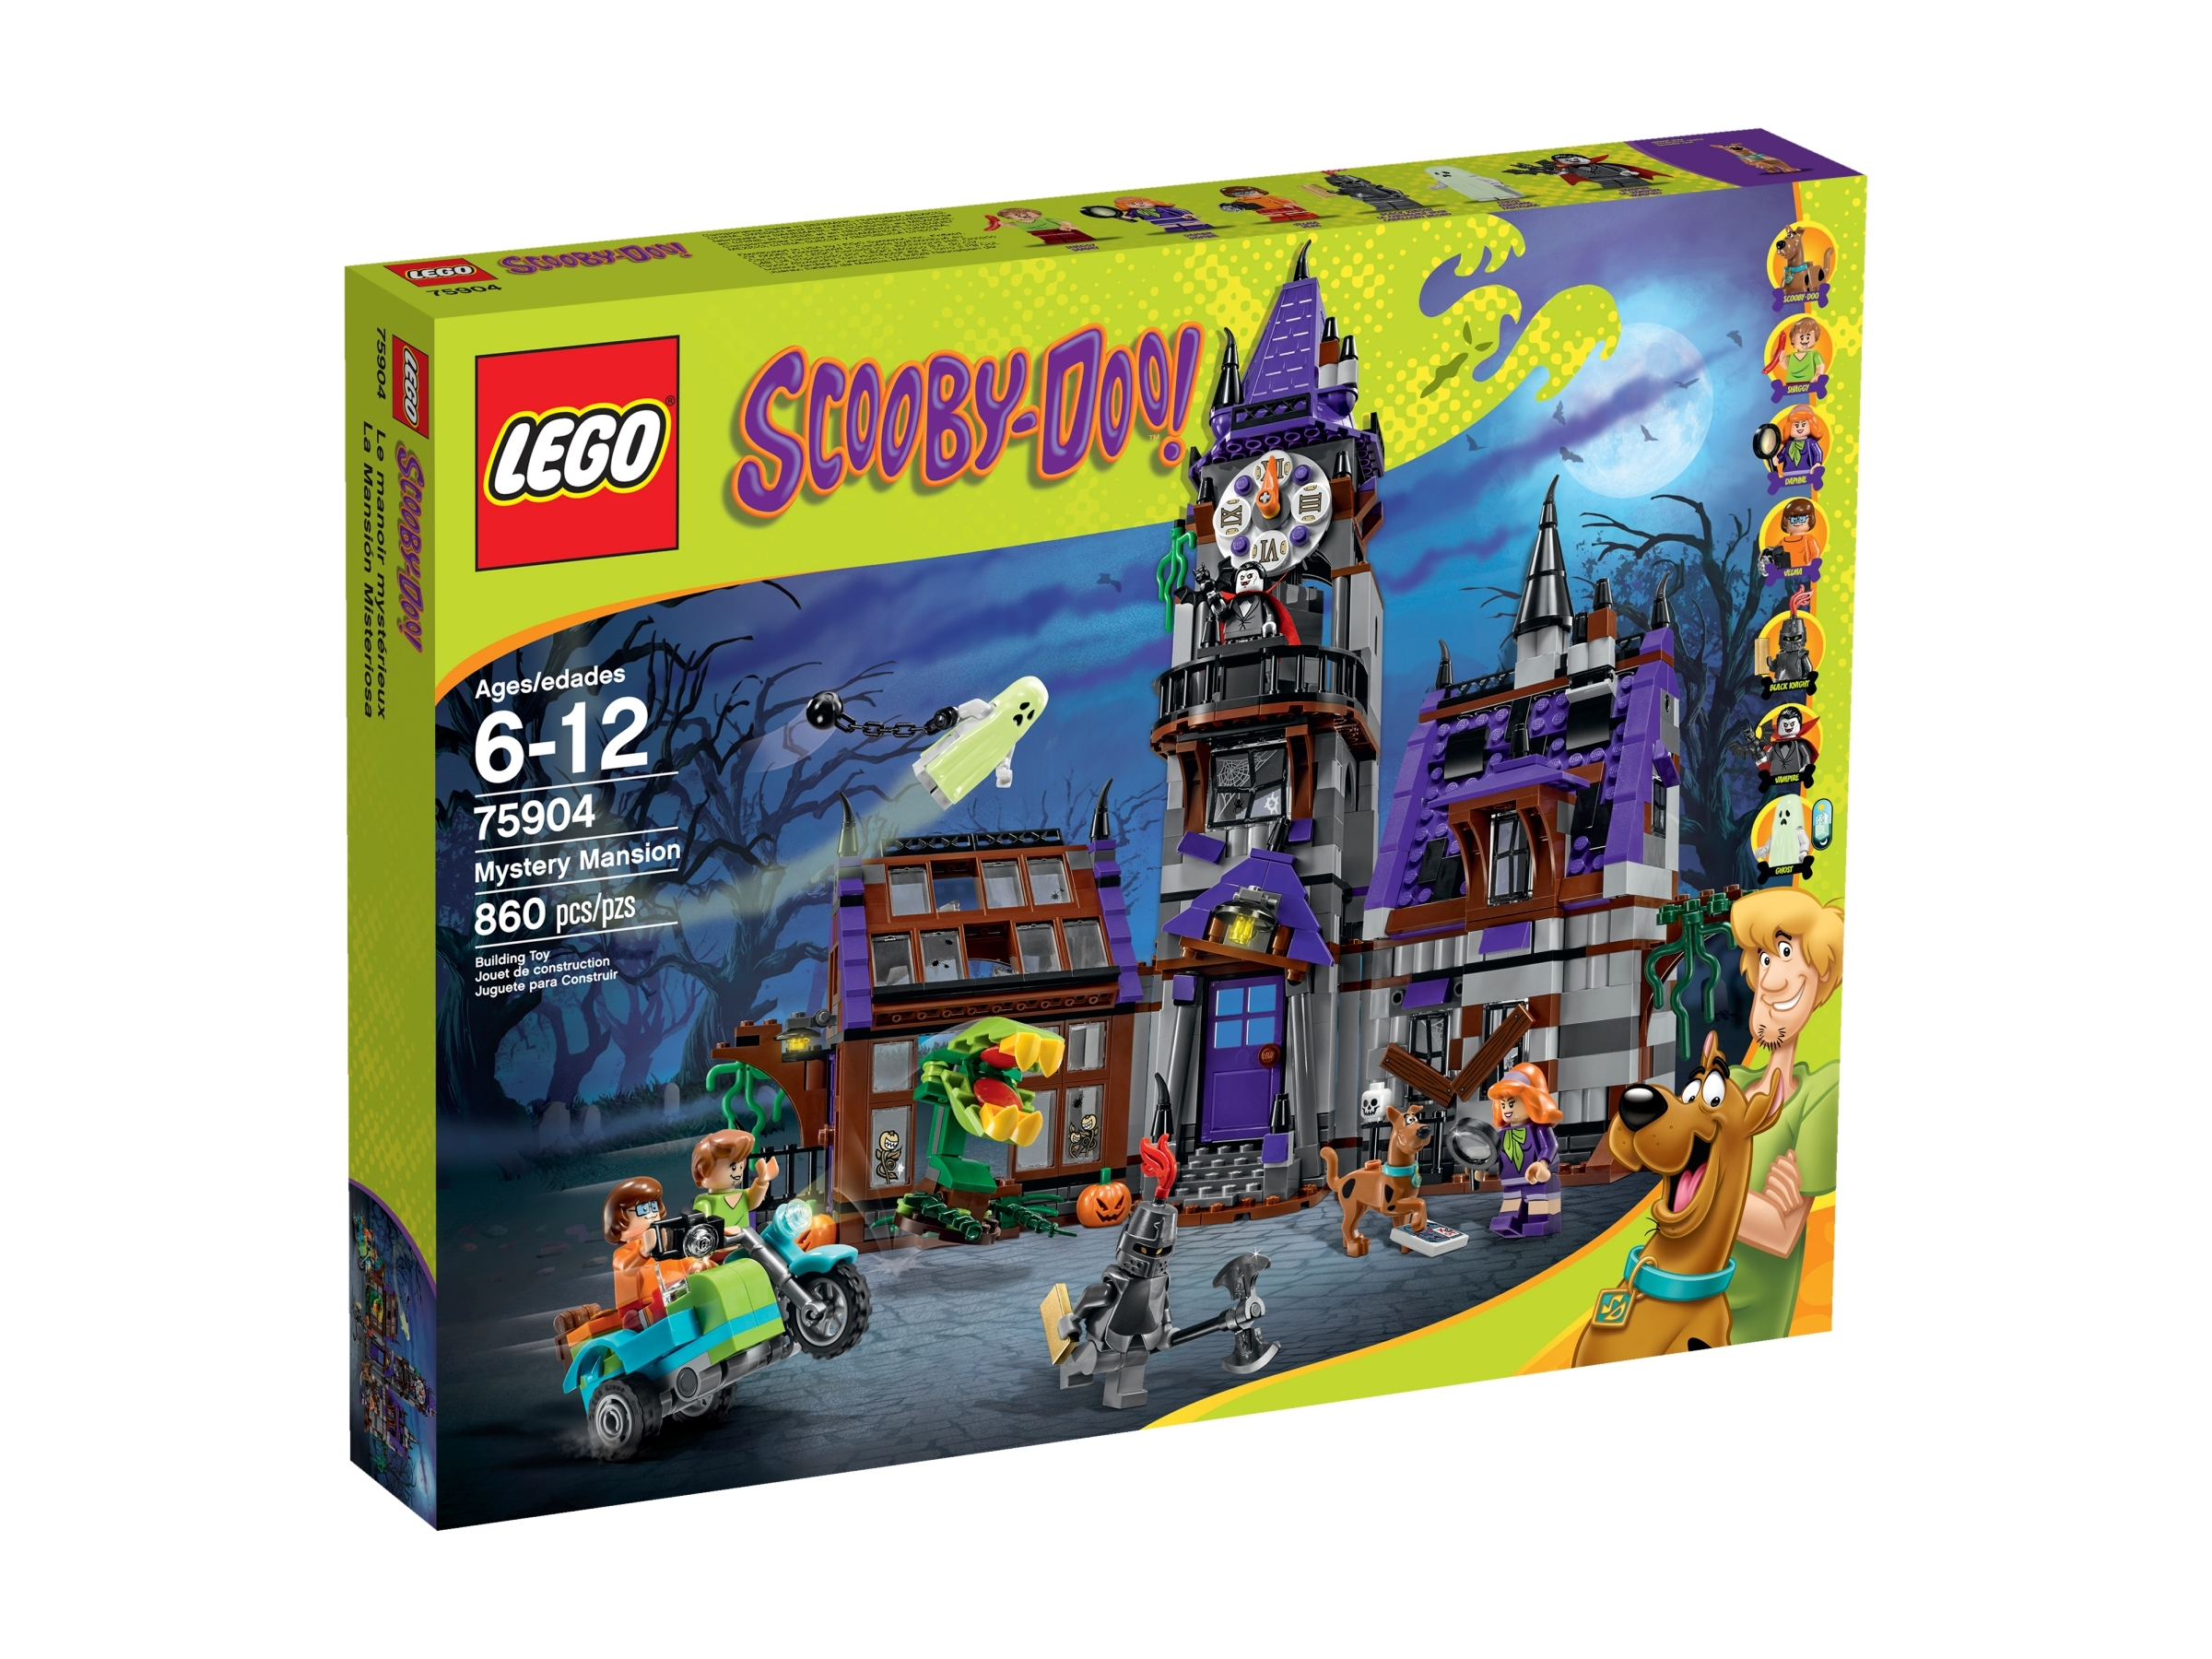 STICKERS Lego Scooby Doo 75904 Mystery Mansion Stickers Only NEW Original